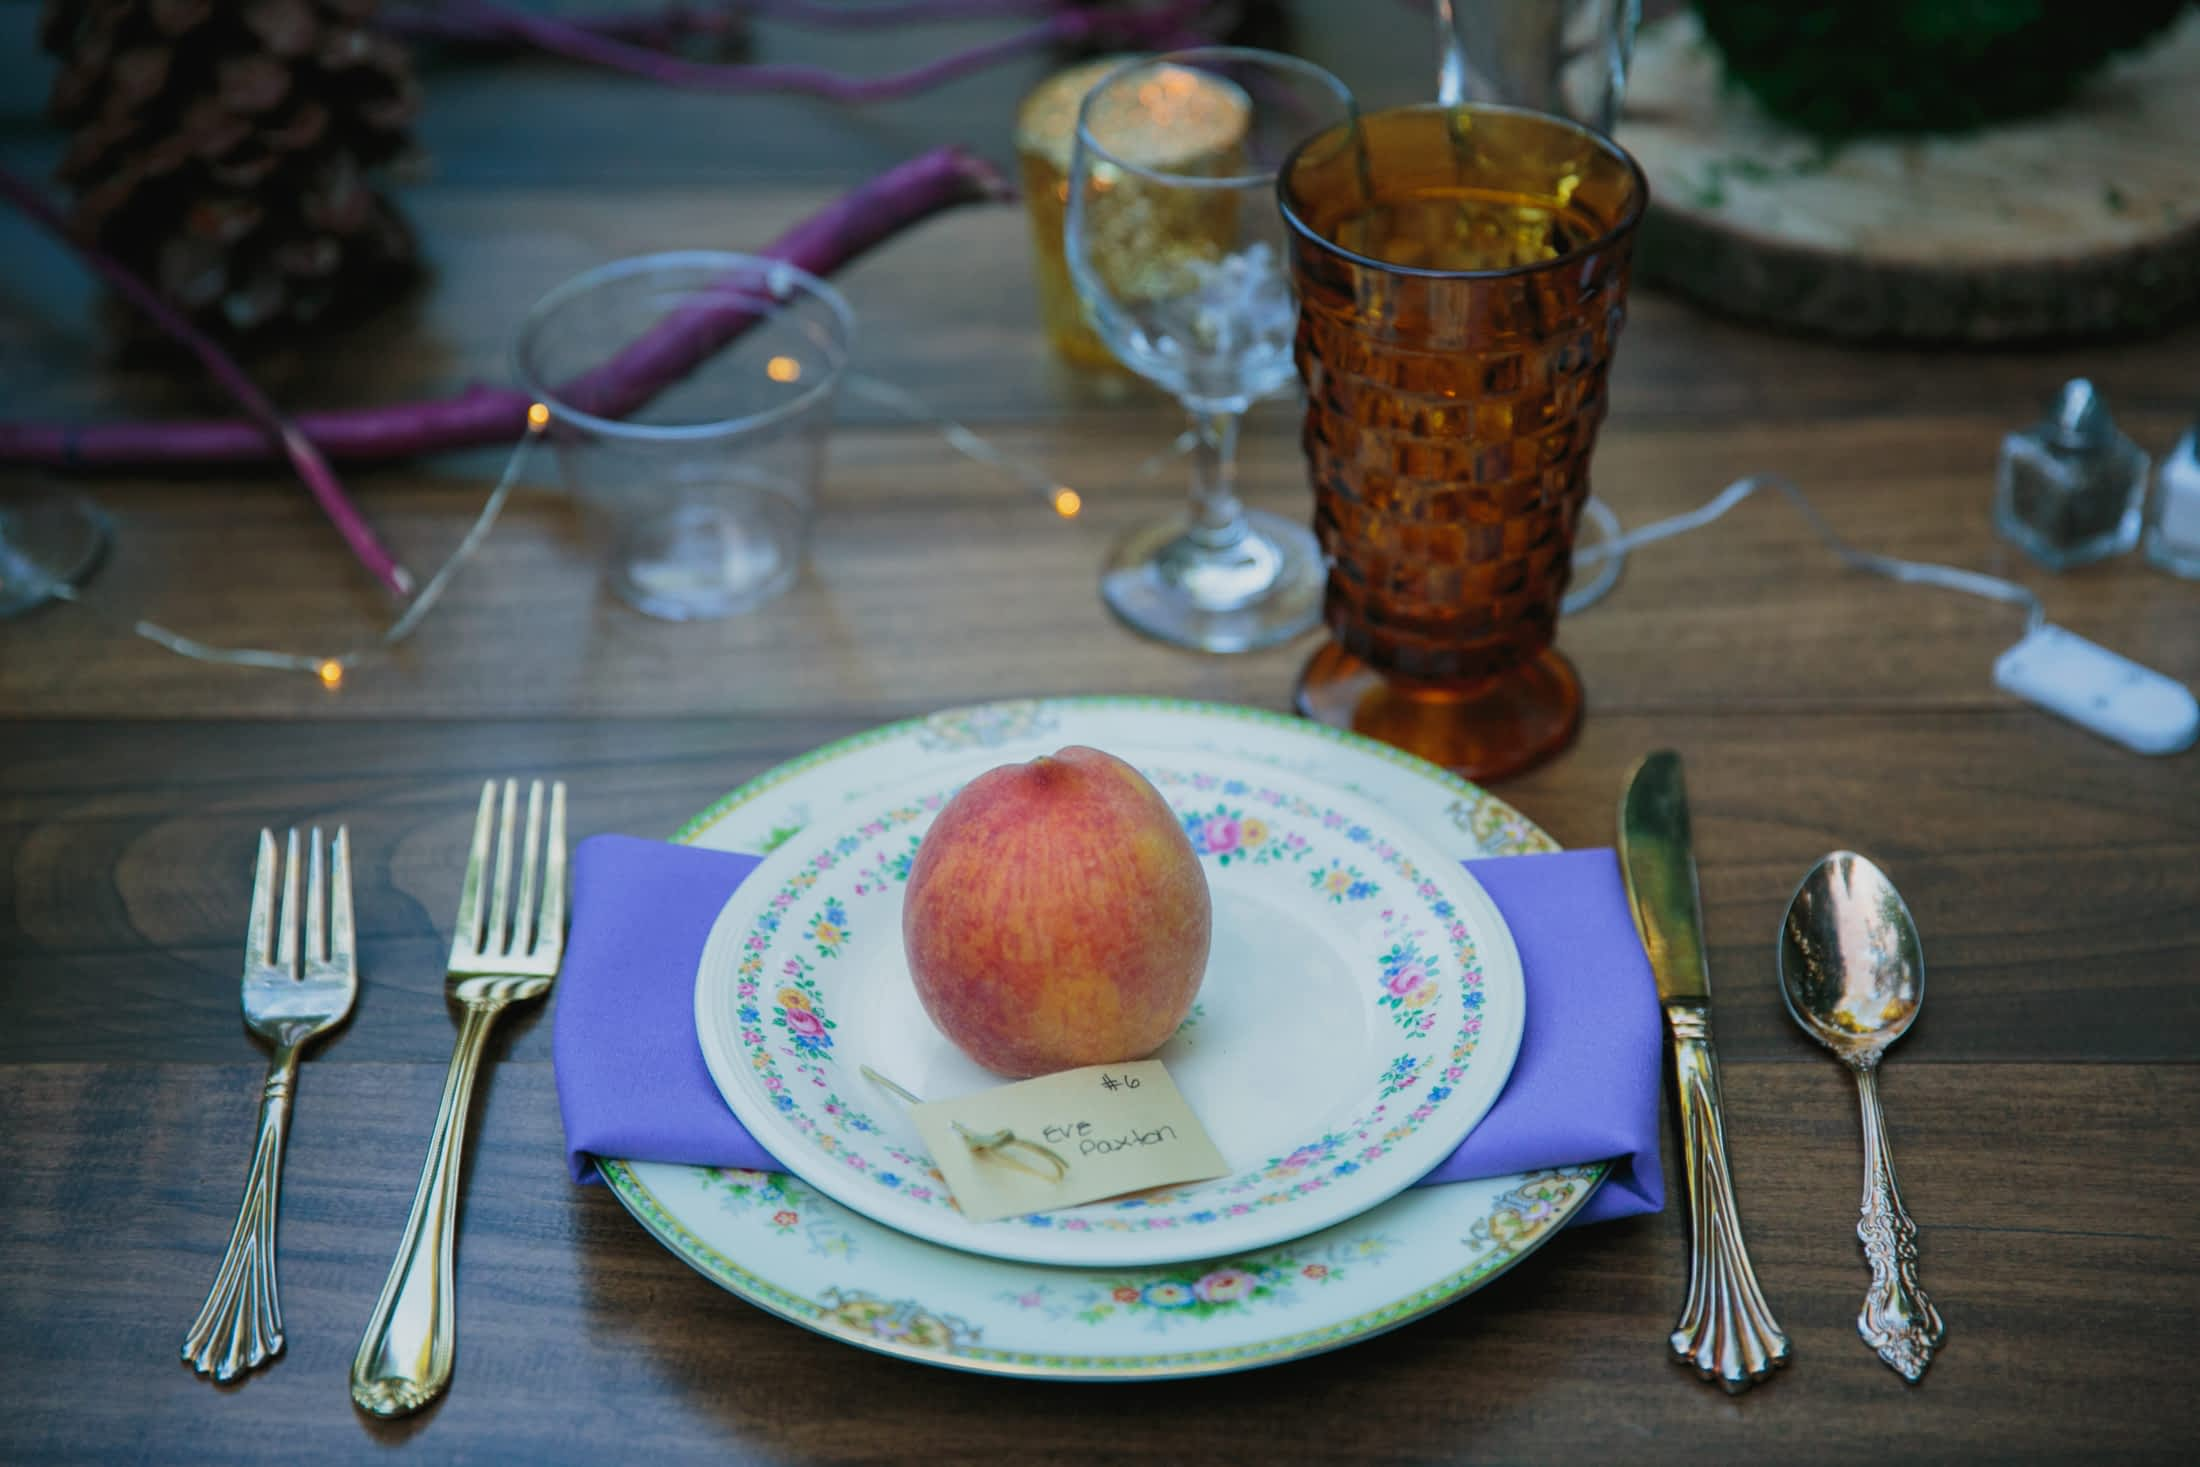 A single place-setting with a ripe peach on the vintage plate.